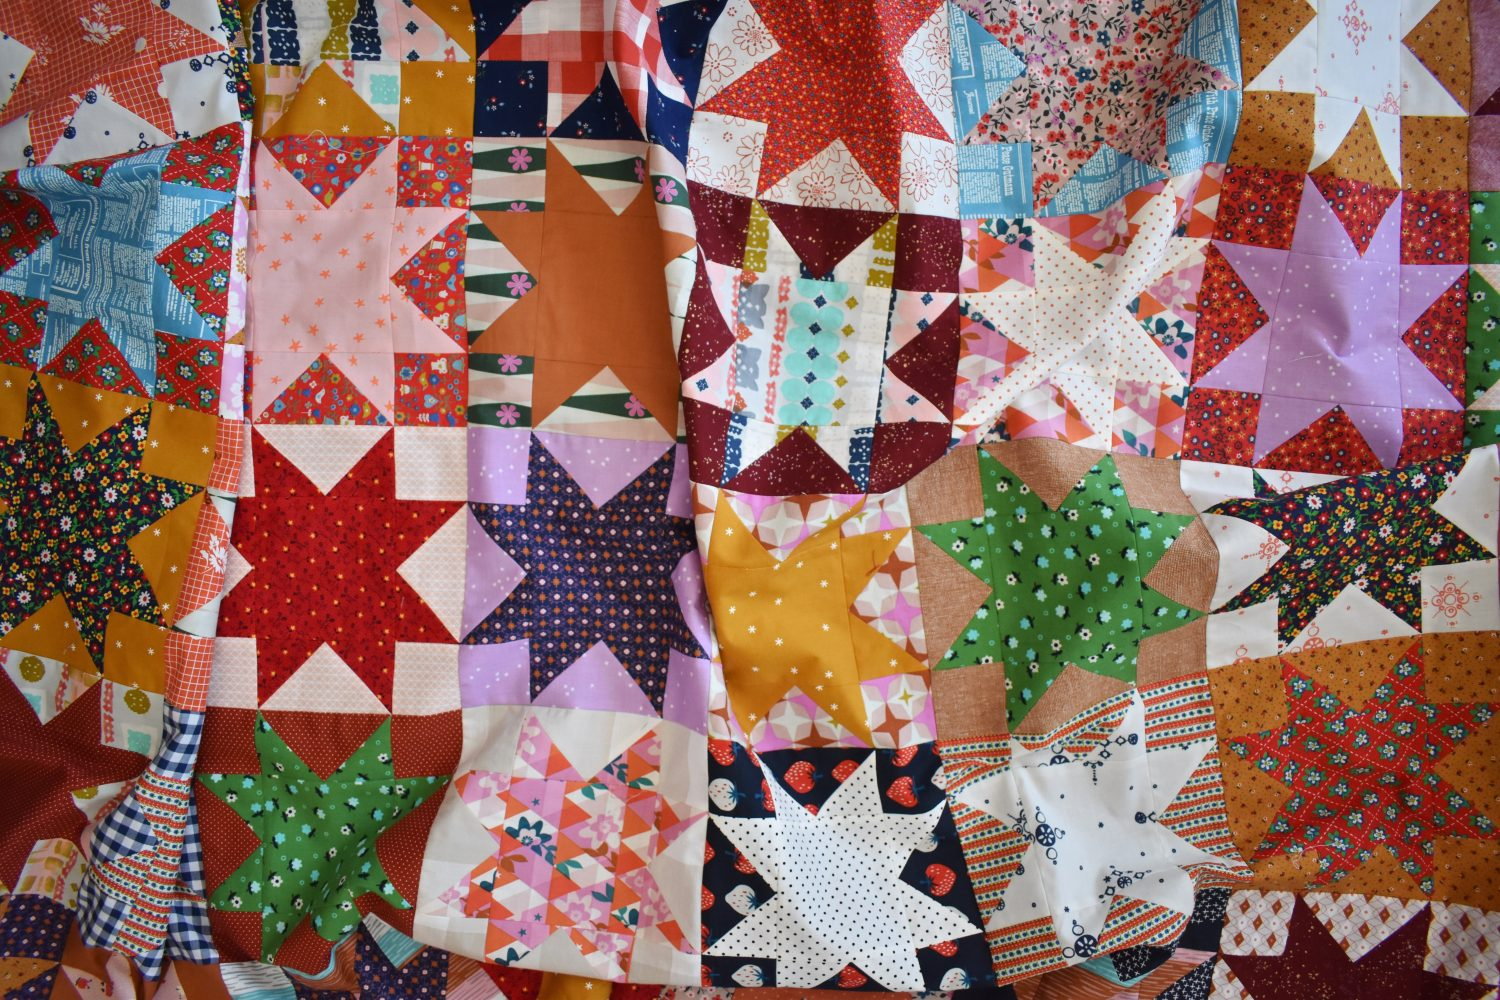 A 1970's inspired star quilt